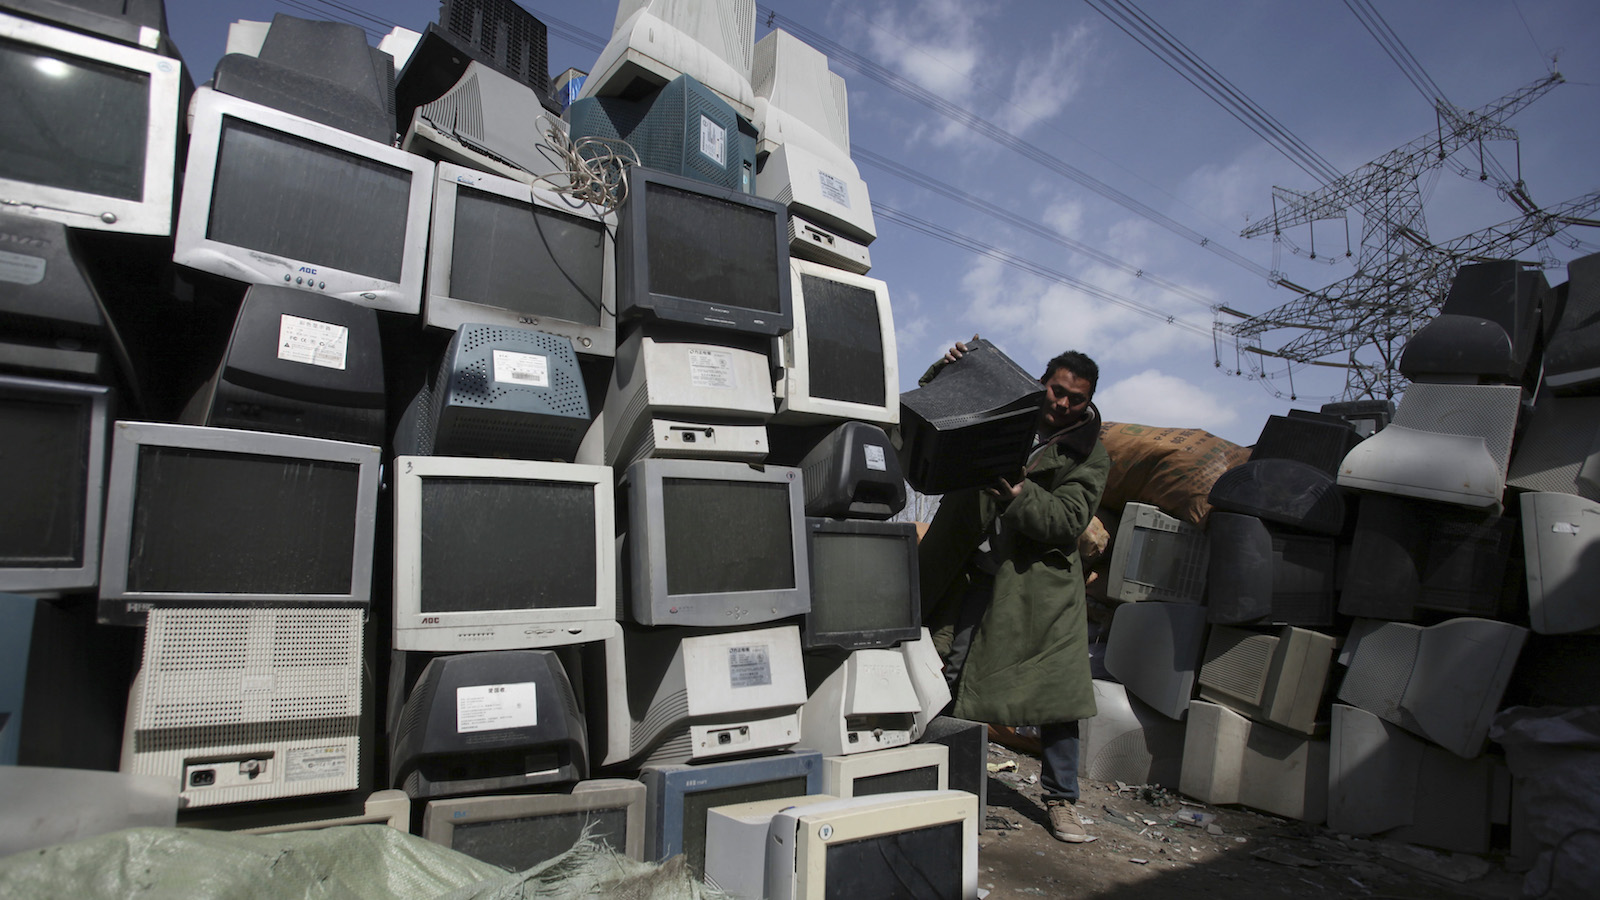 trash pile of old computers